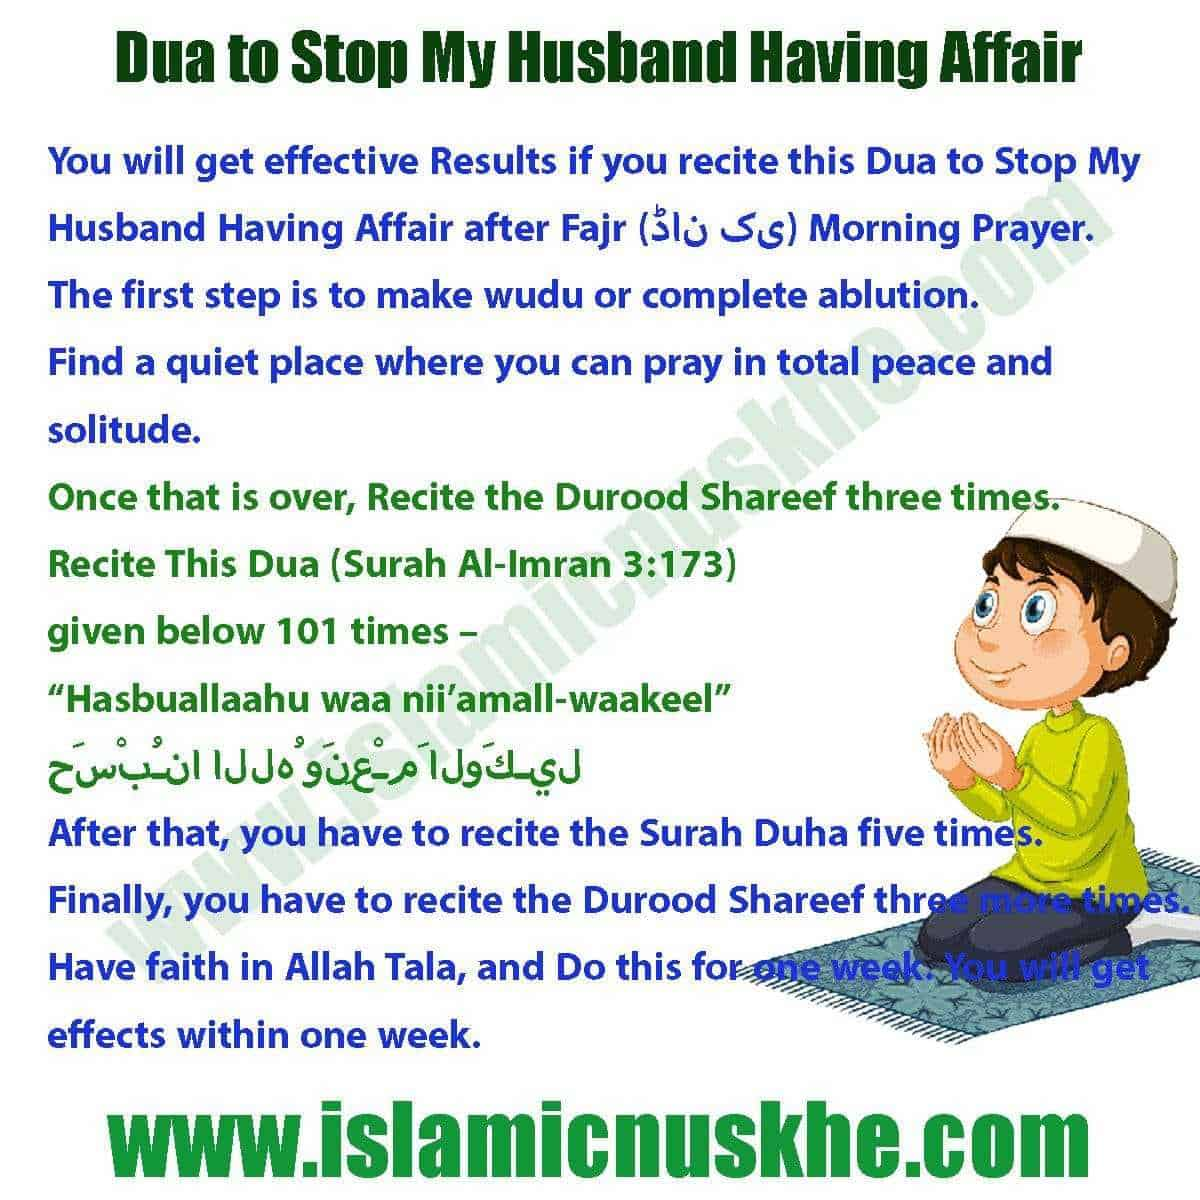 Here is Procedure to Perform the Dua to Stop My Husband Having Affair Step by Step